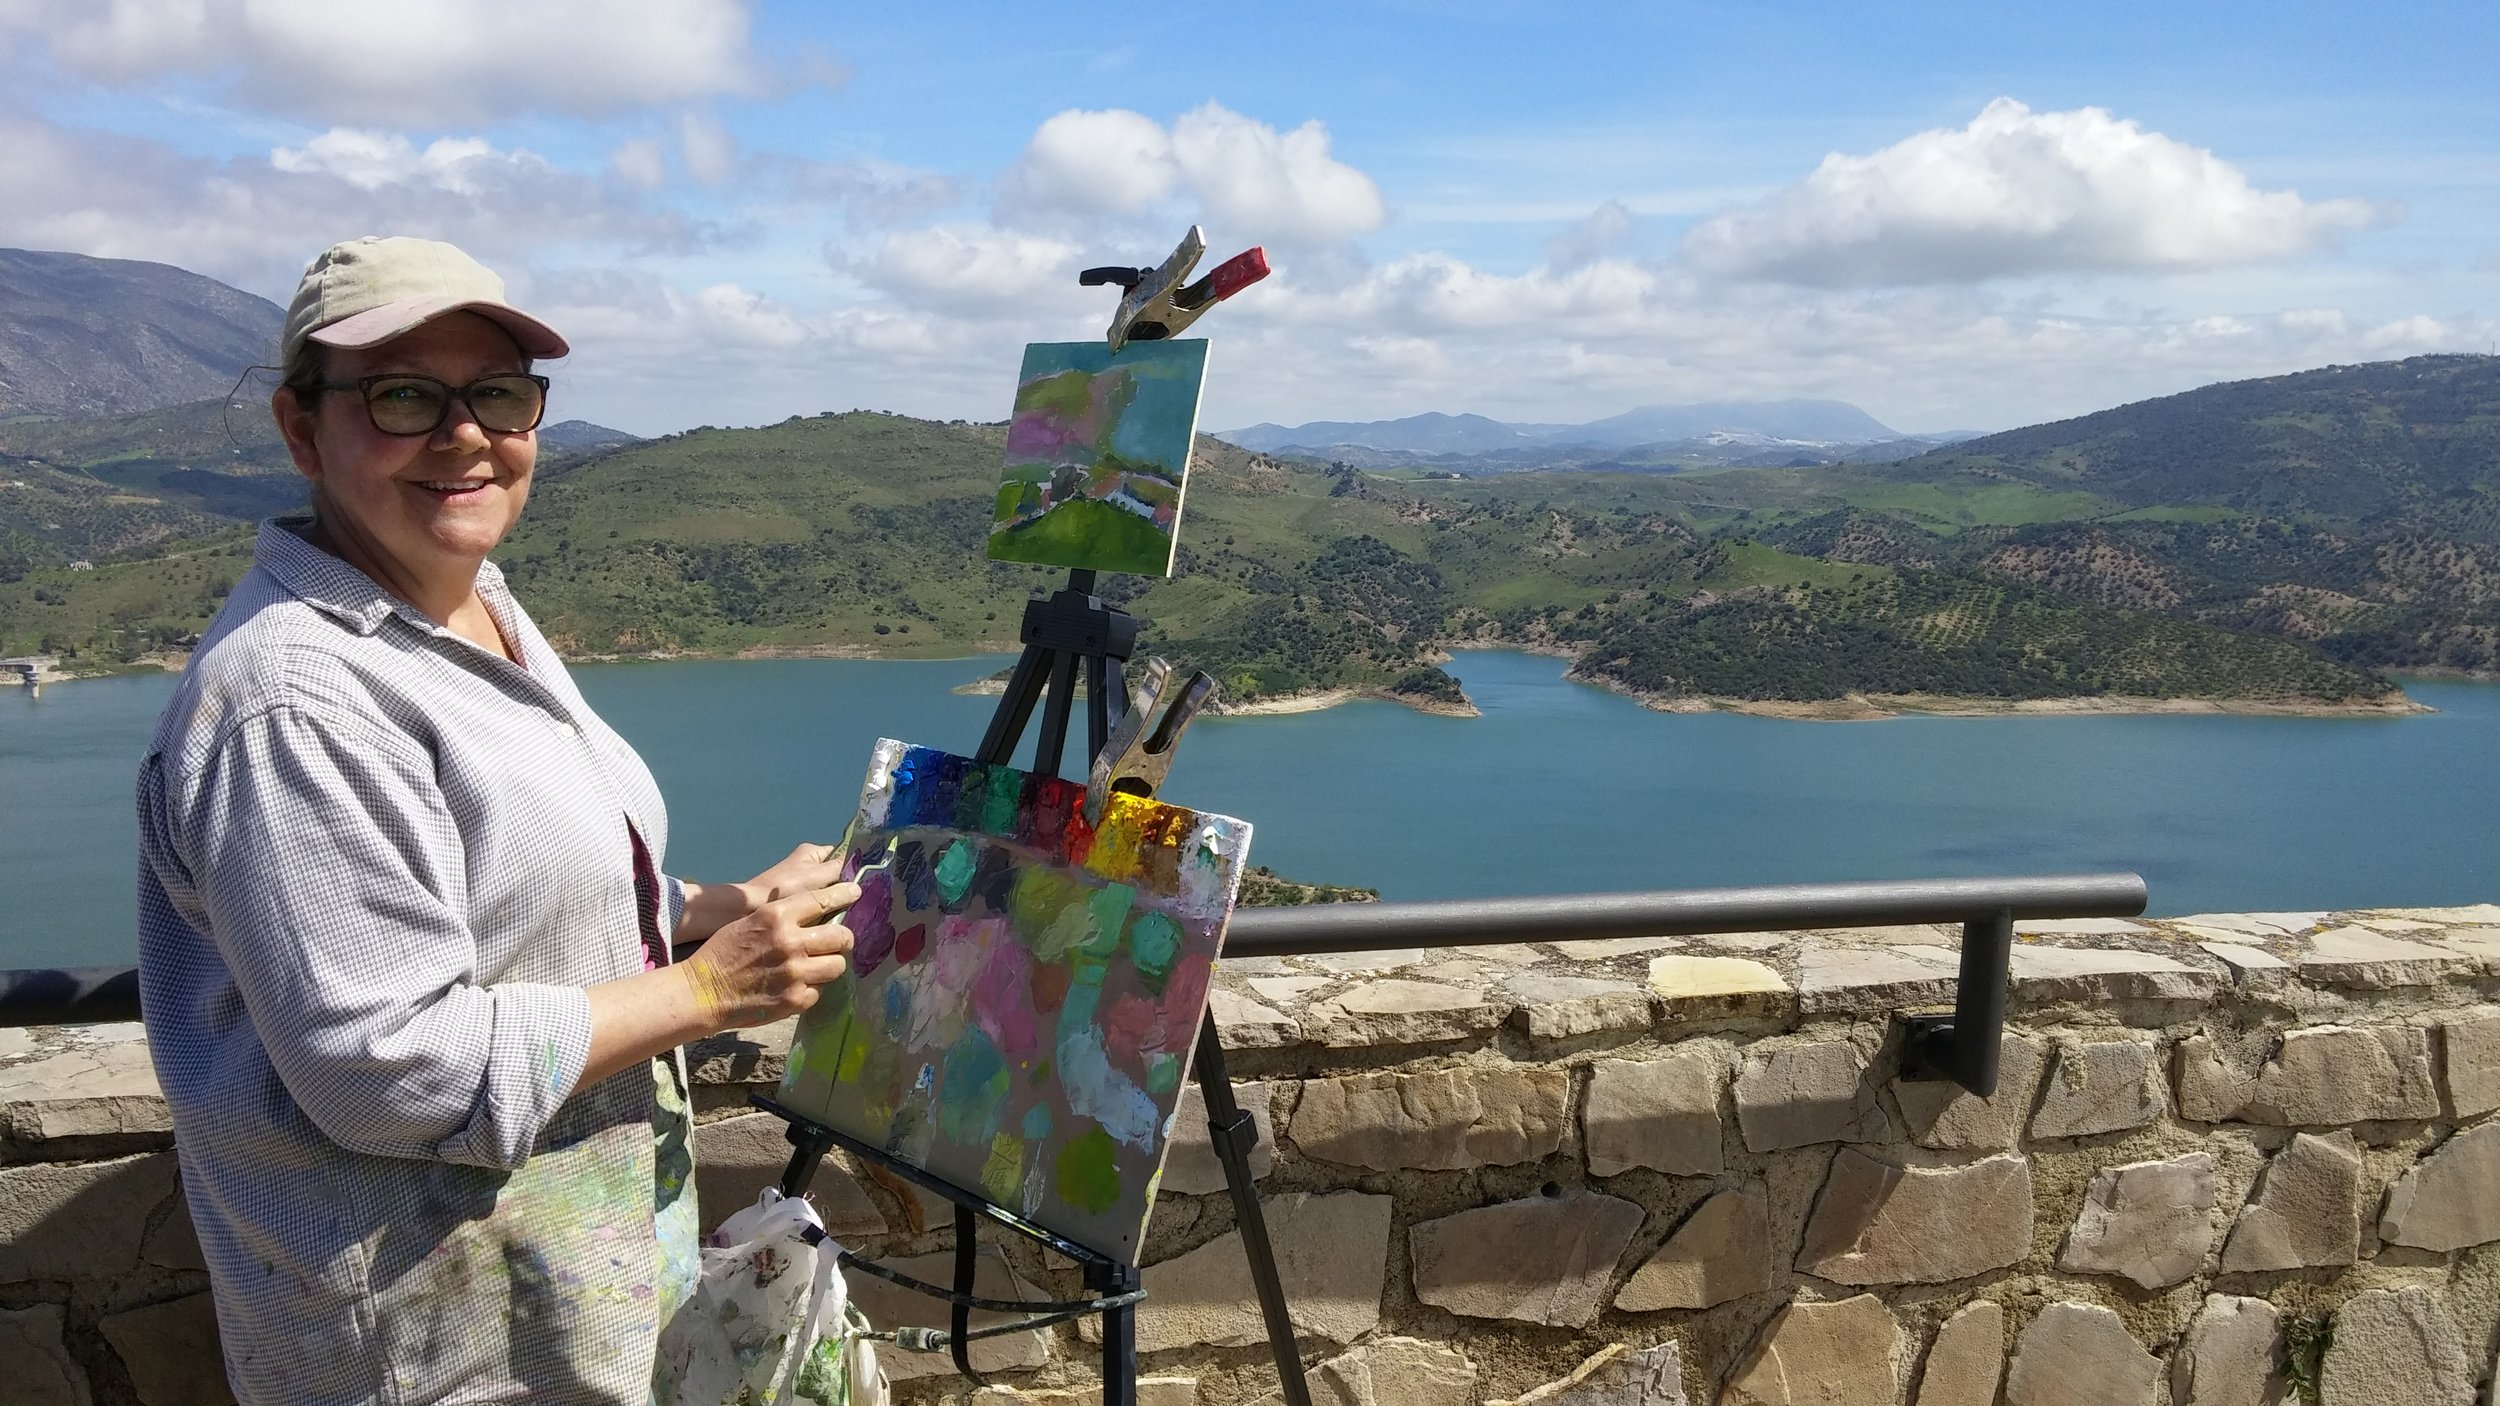 Artists in Andalucia, Spain - 2018